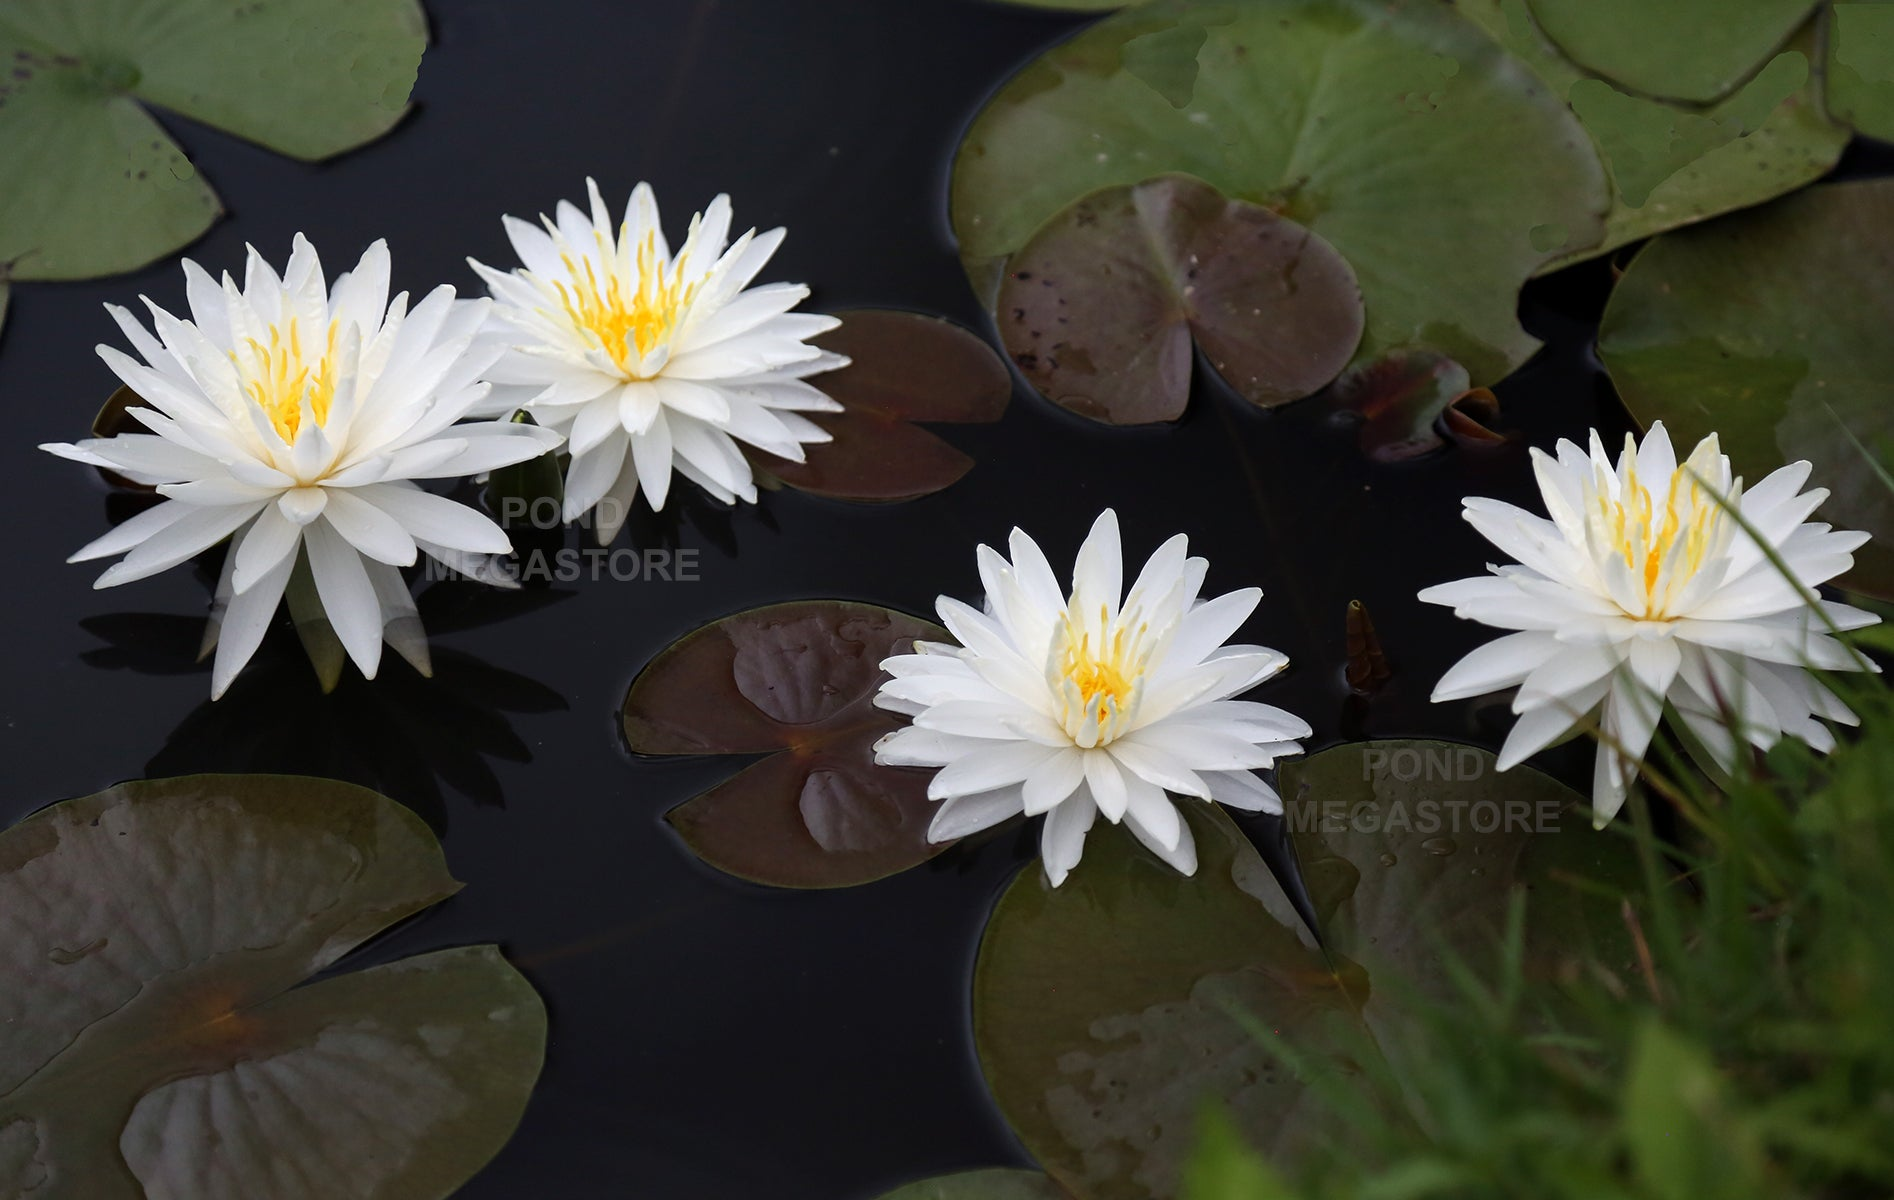 Winter Cold Hardy Water Lily Flowers Buy Water Lily Plants